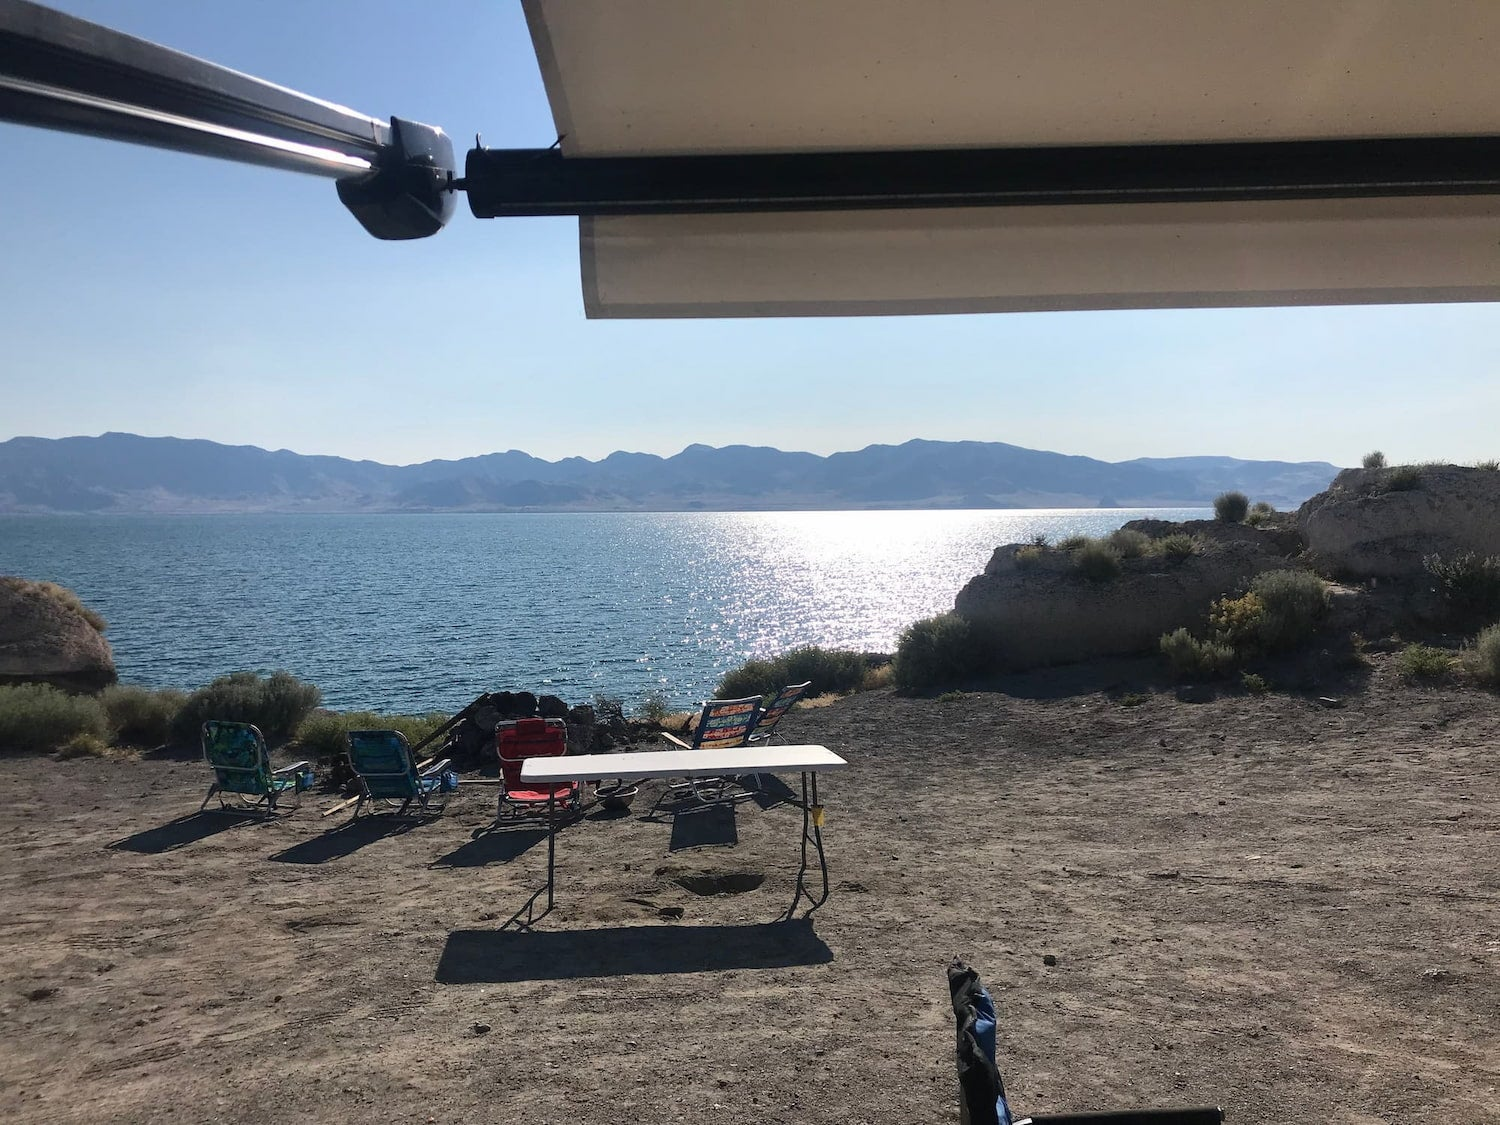 RV awning overlooking Pyramid Lake campsite.